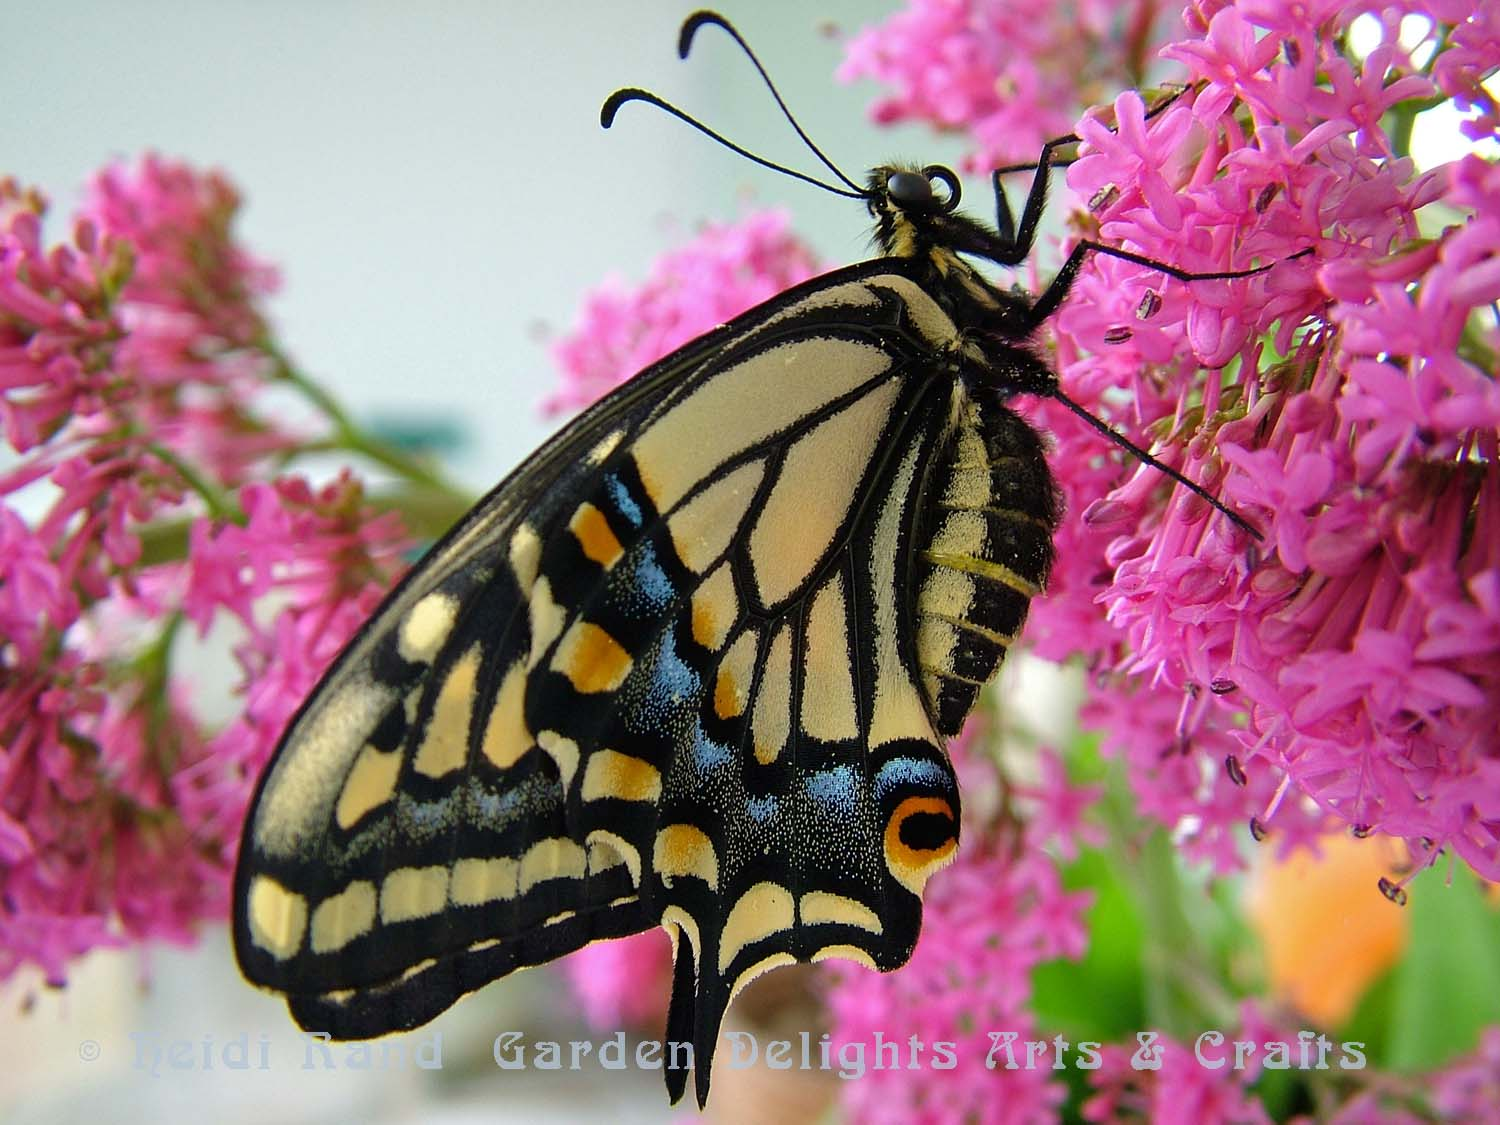 Swallowtail butterfly on pink butterfly bush flower